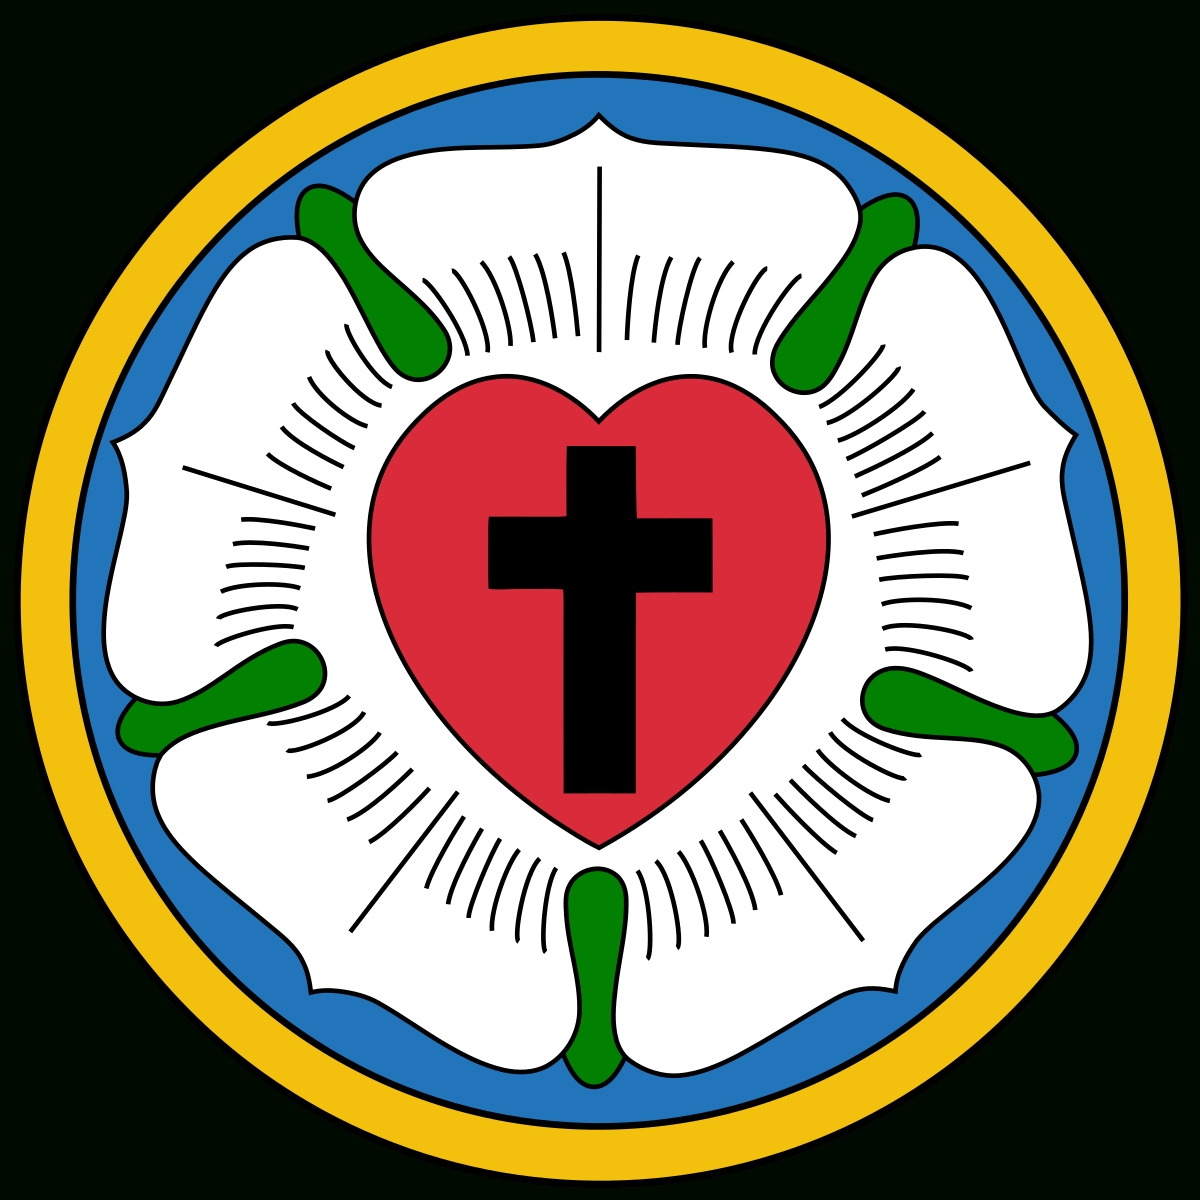 Liturgical Calendar (Lutheran) - Wikipedia with regard to Liturgical Catholic Calendar With Color Of Priest Vest Year 2020 Free Copy